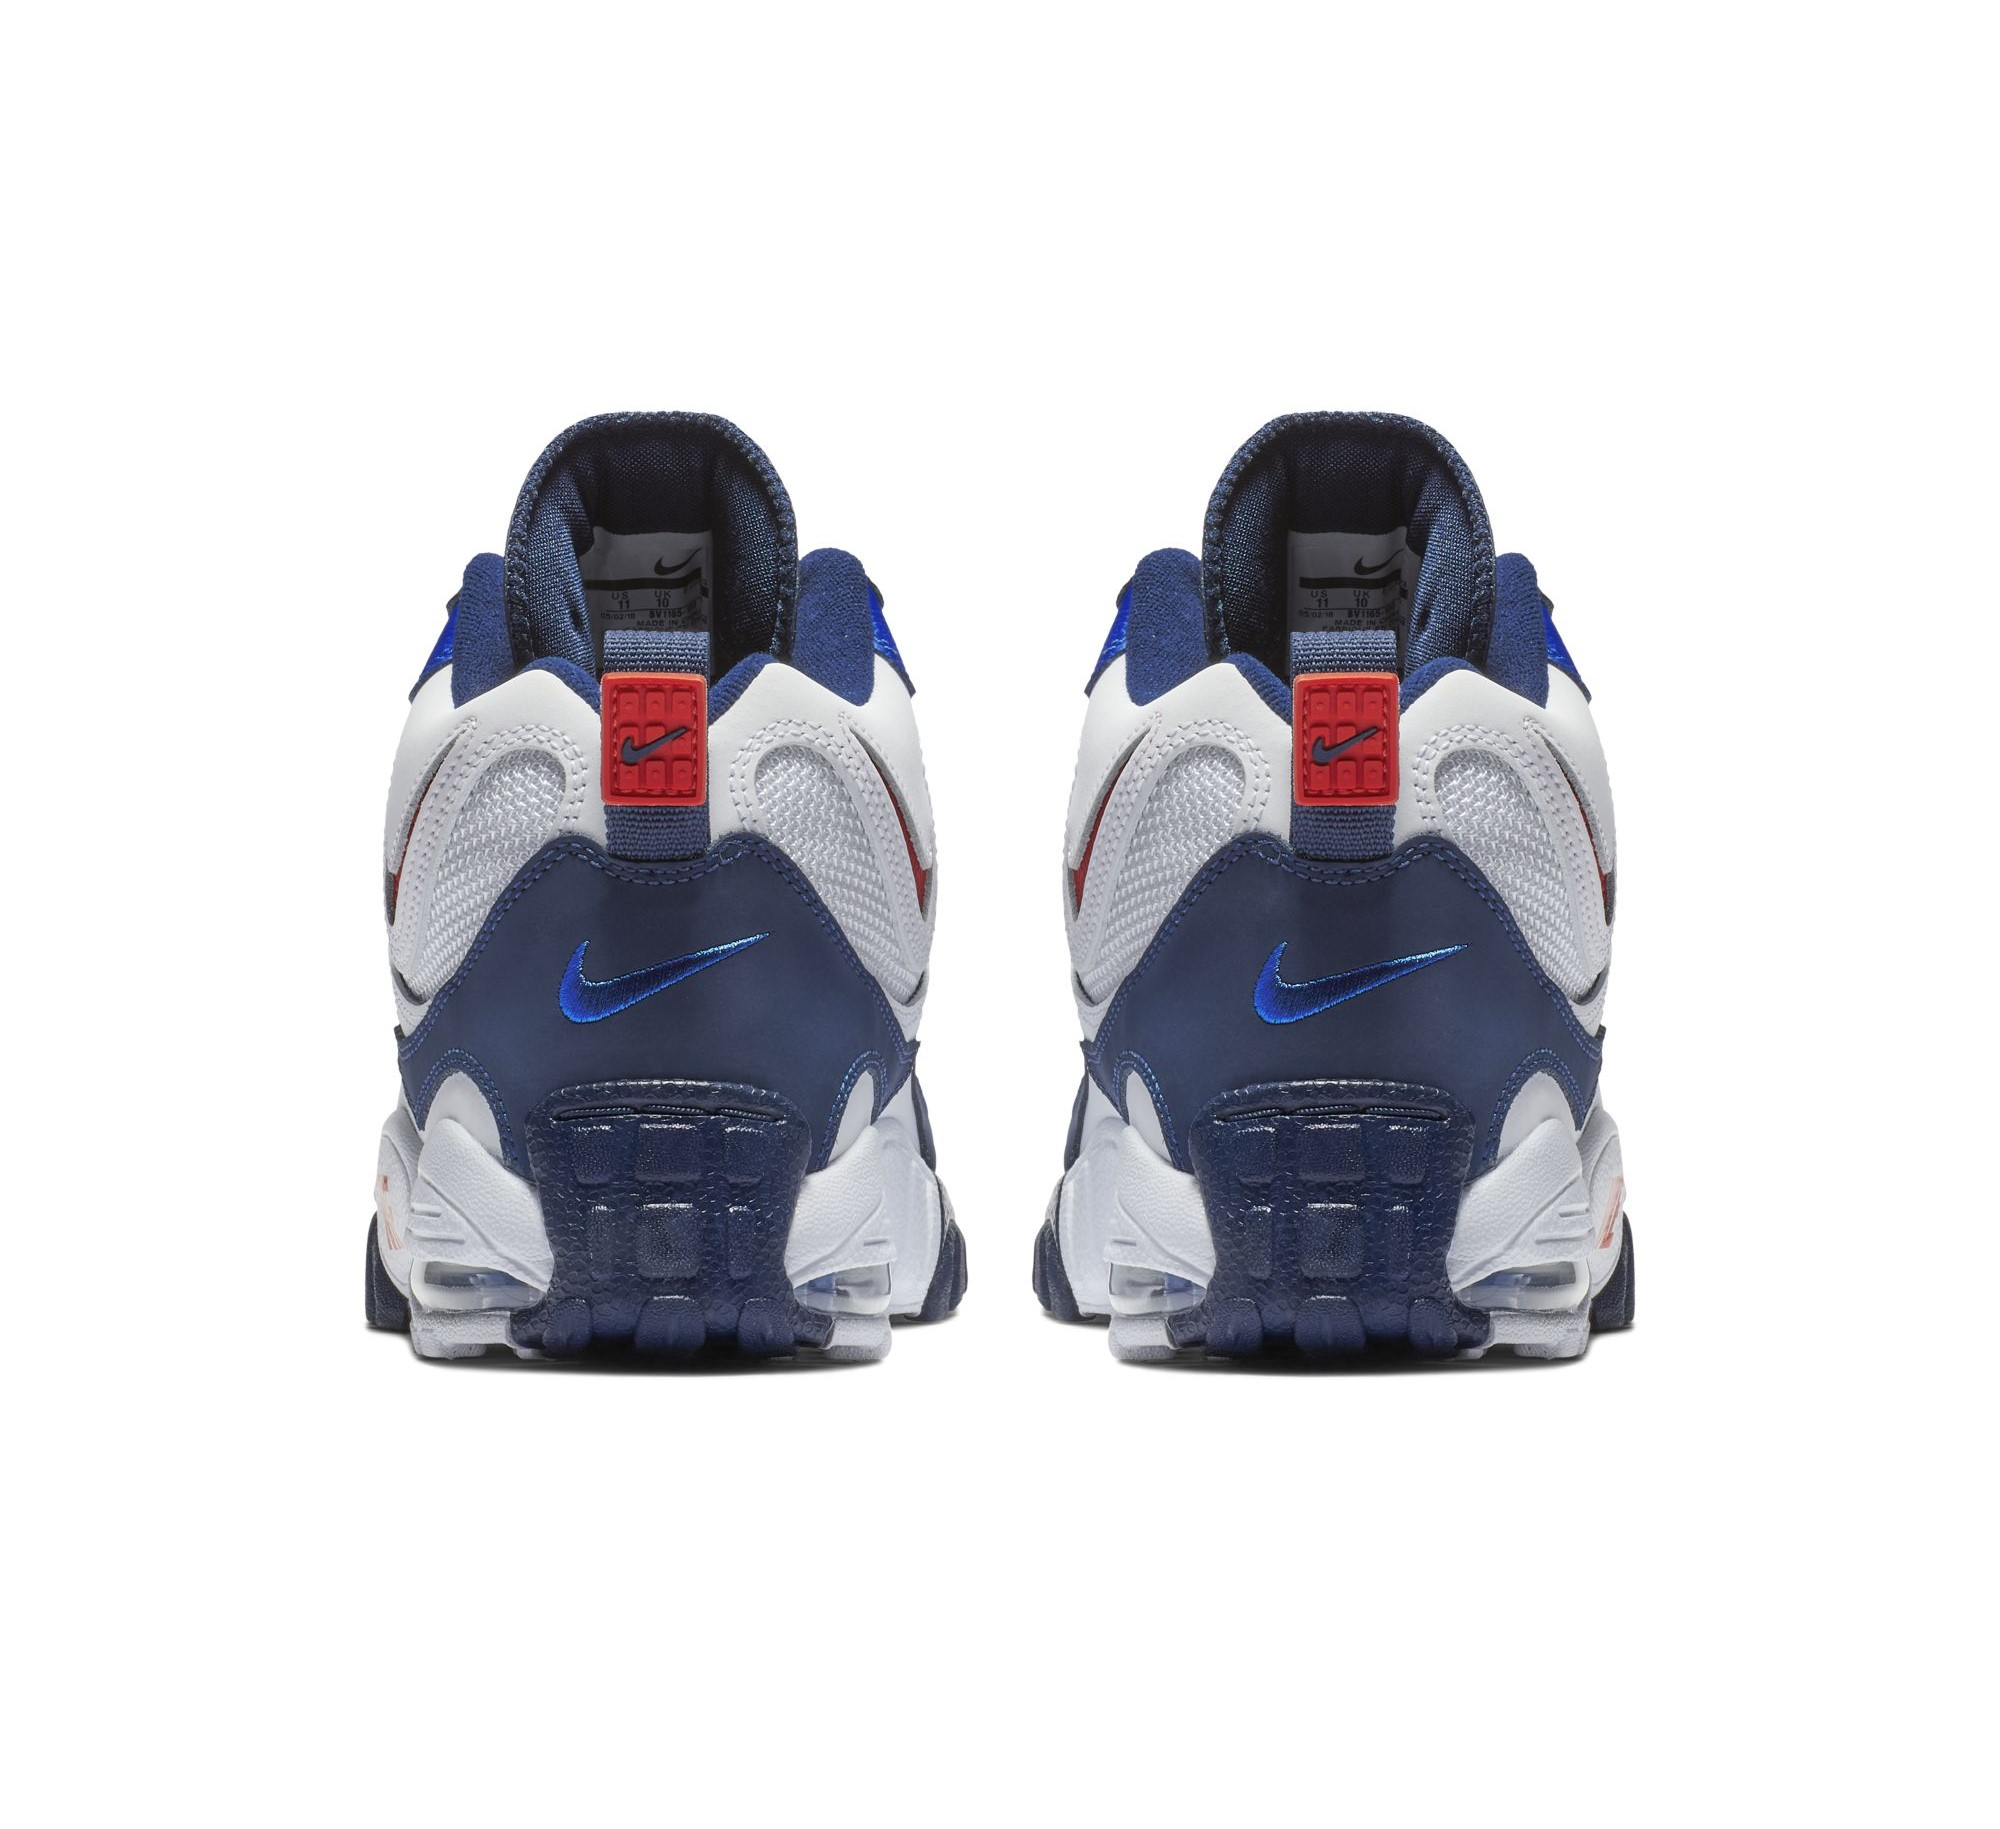 The Nike Air Max Speed Turf Has Arrived in Bold New Looks